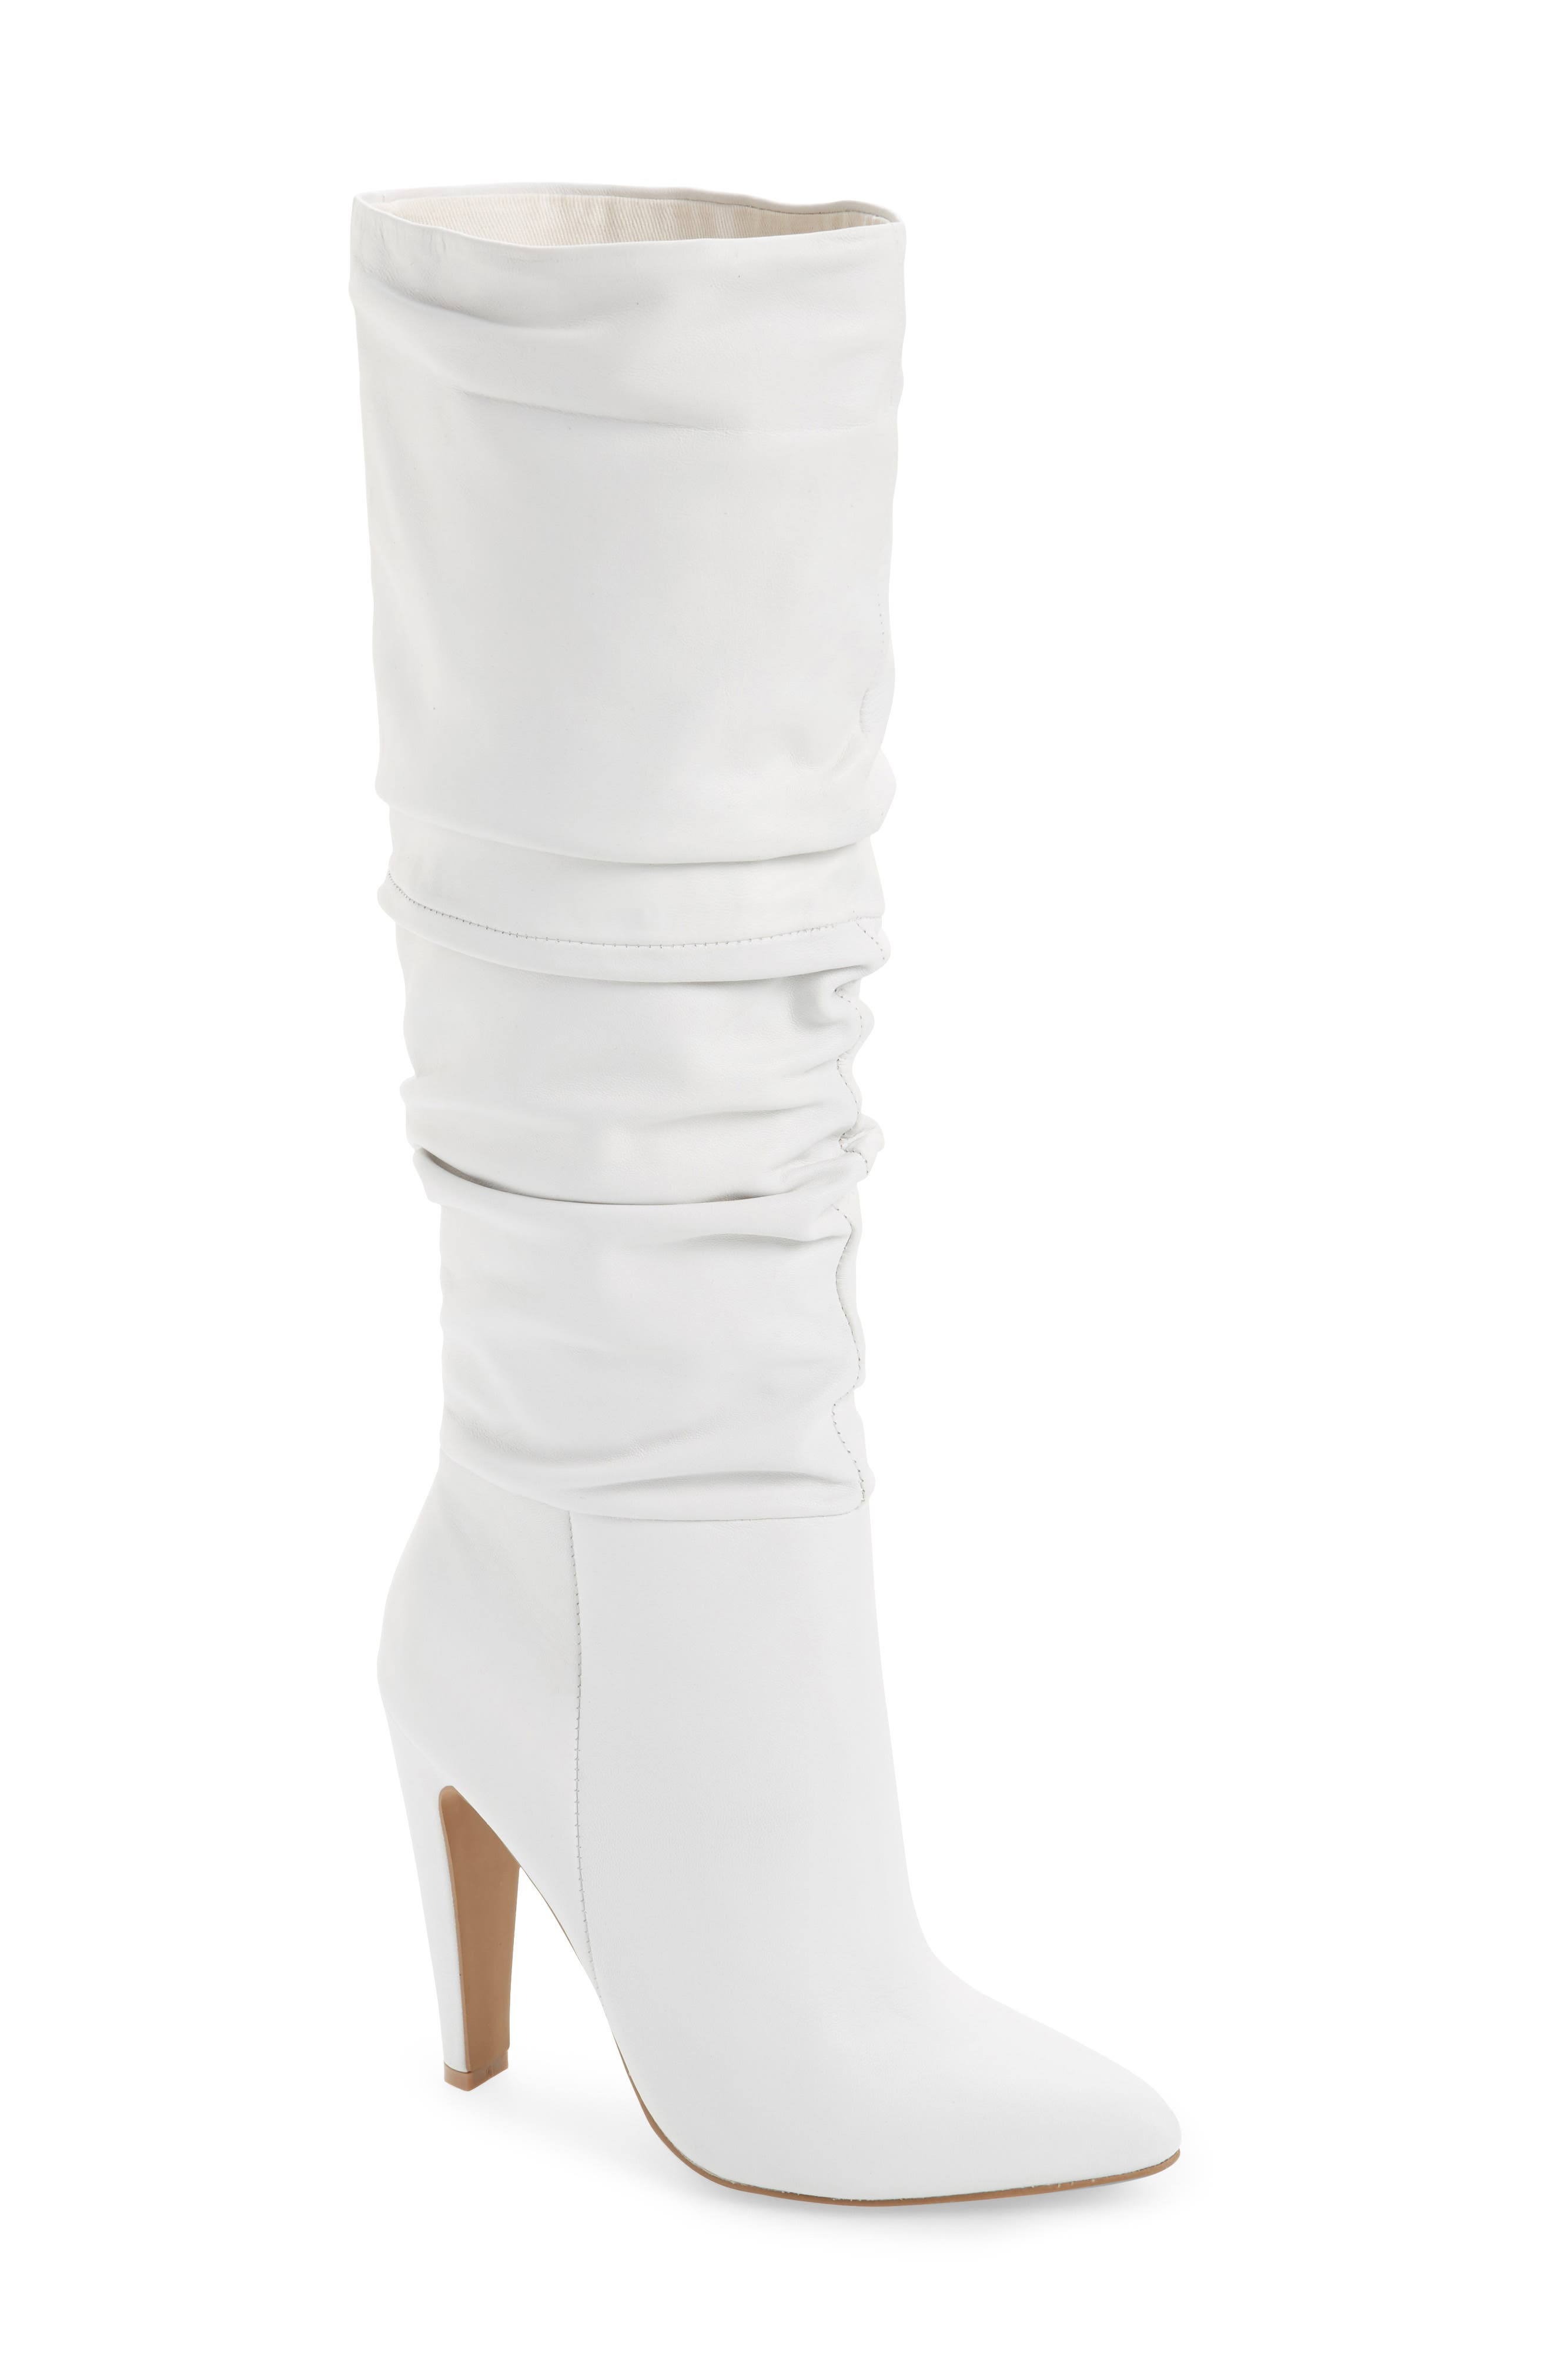 Main Image - Steve Madden Carrie Slouchy Boot (Women)